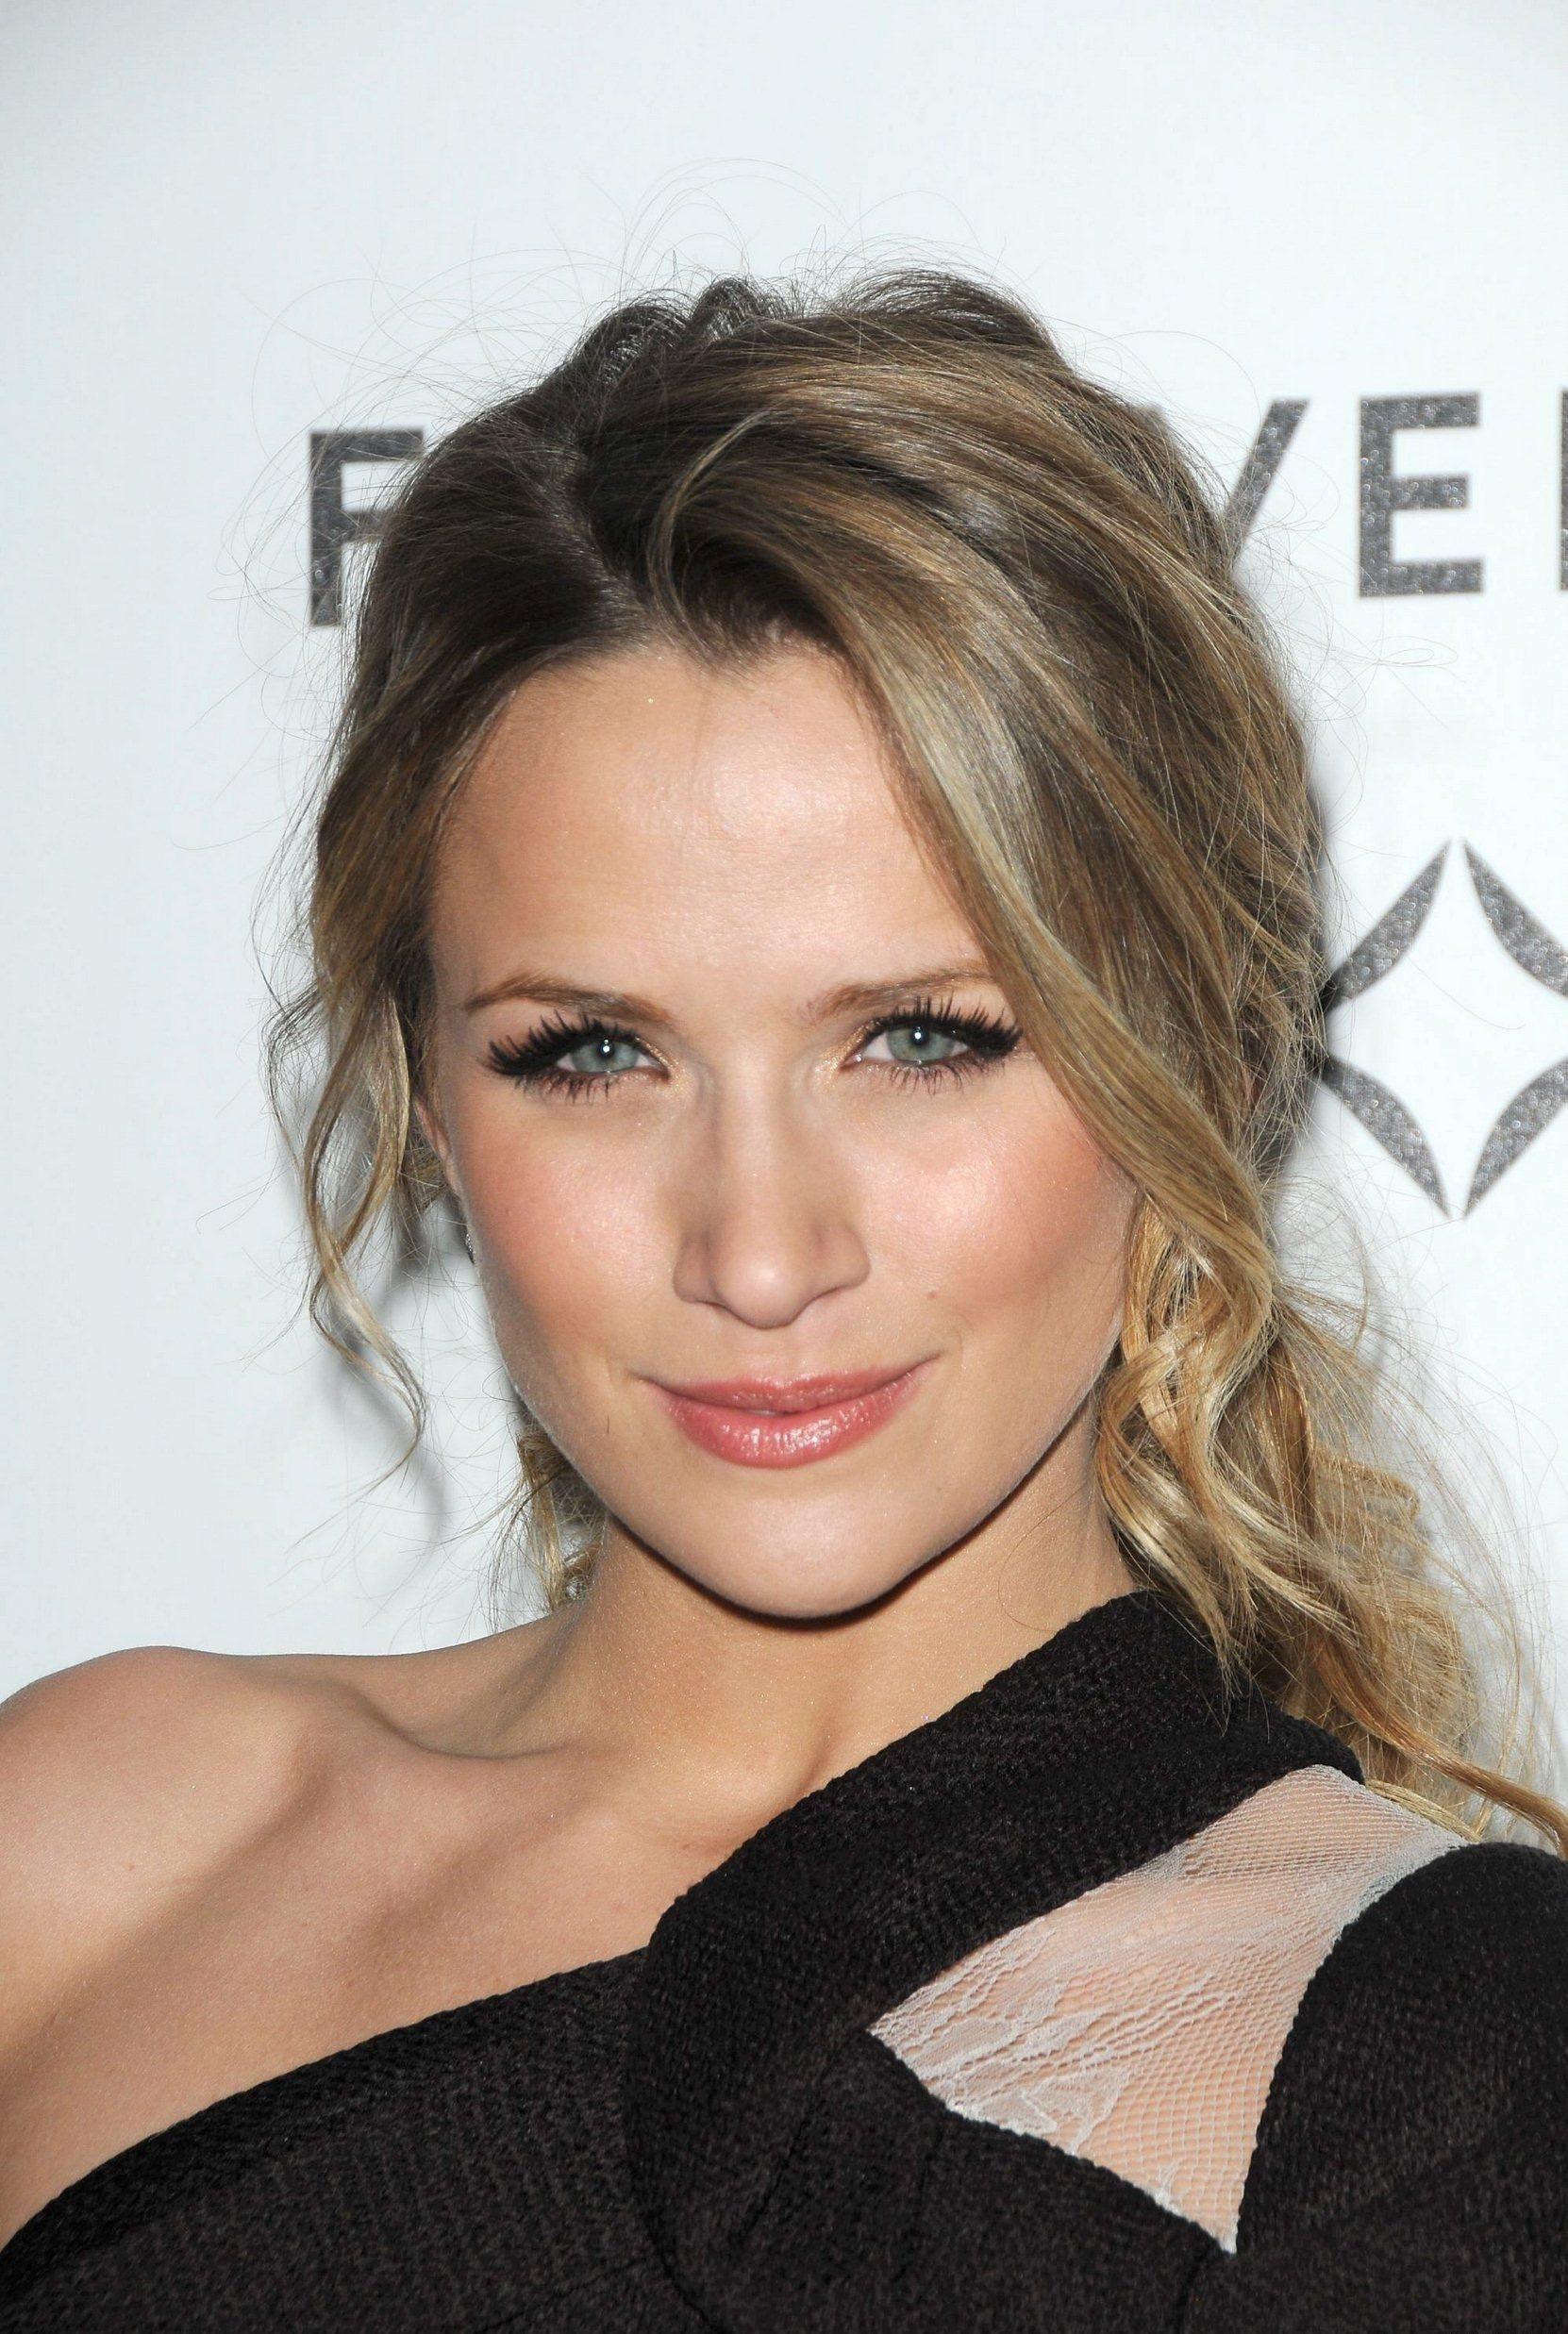 shantel vansanten gifshantel vansanten reddit, shantel vansanten site, shantel vansanten gif, shantel vansanten shooter, shantel vansanten fansite, shantel vansanten vk, shantel vansanten twitter, shantel vansanten fan, shantel vansanten photoshoots, shantel vansanten getty images, shantel vansanten listal, shantel vansanten meghan markle, shantel vansanten gray card, shantel vansanten tumblr gif, shantel vansanten wallpaper hd, shantel vansanten and jon fletcher, shantel vansanten sports illustrated, shantel vansanten model, shantel vansanten instagram, shantel vansanten and robert buckley